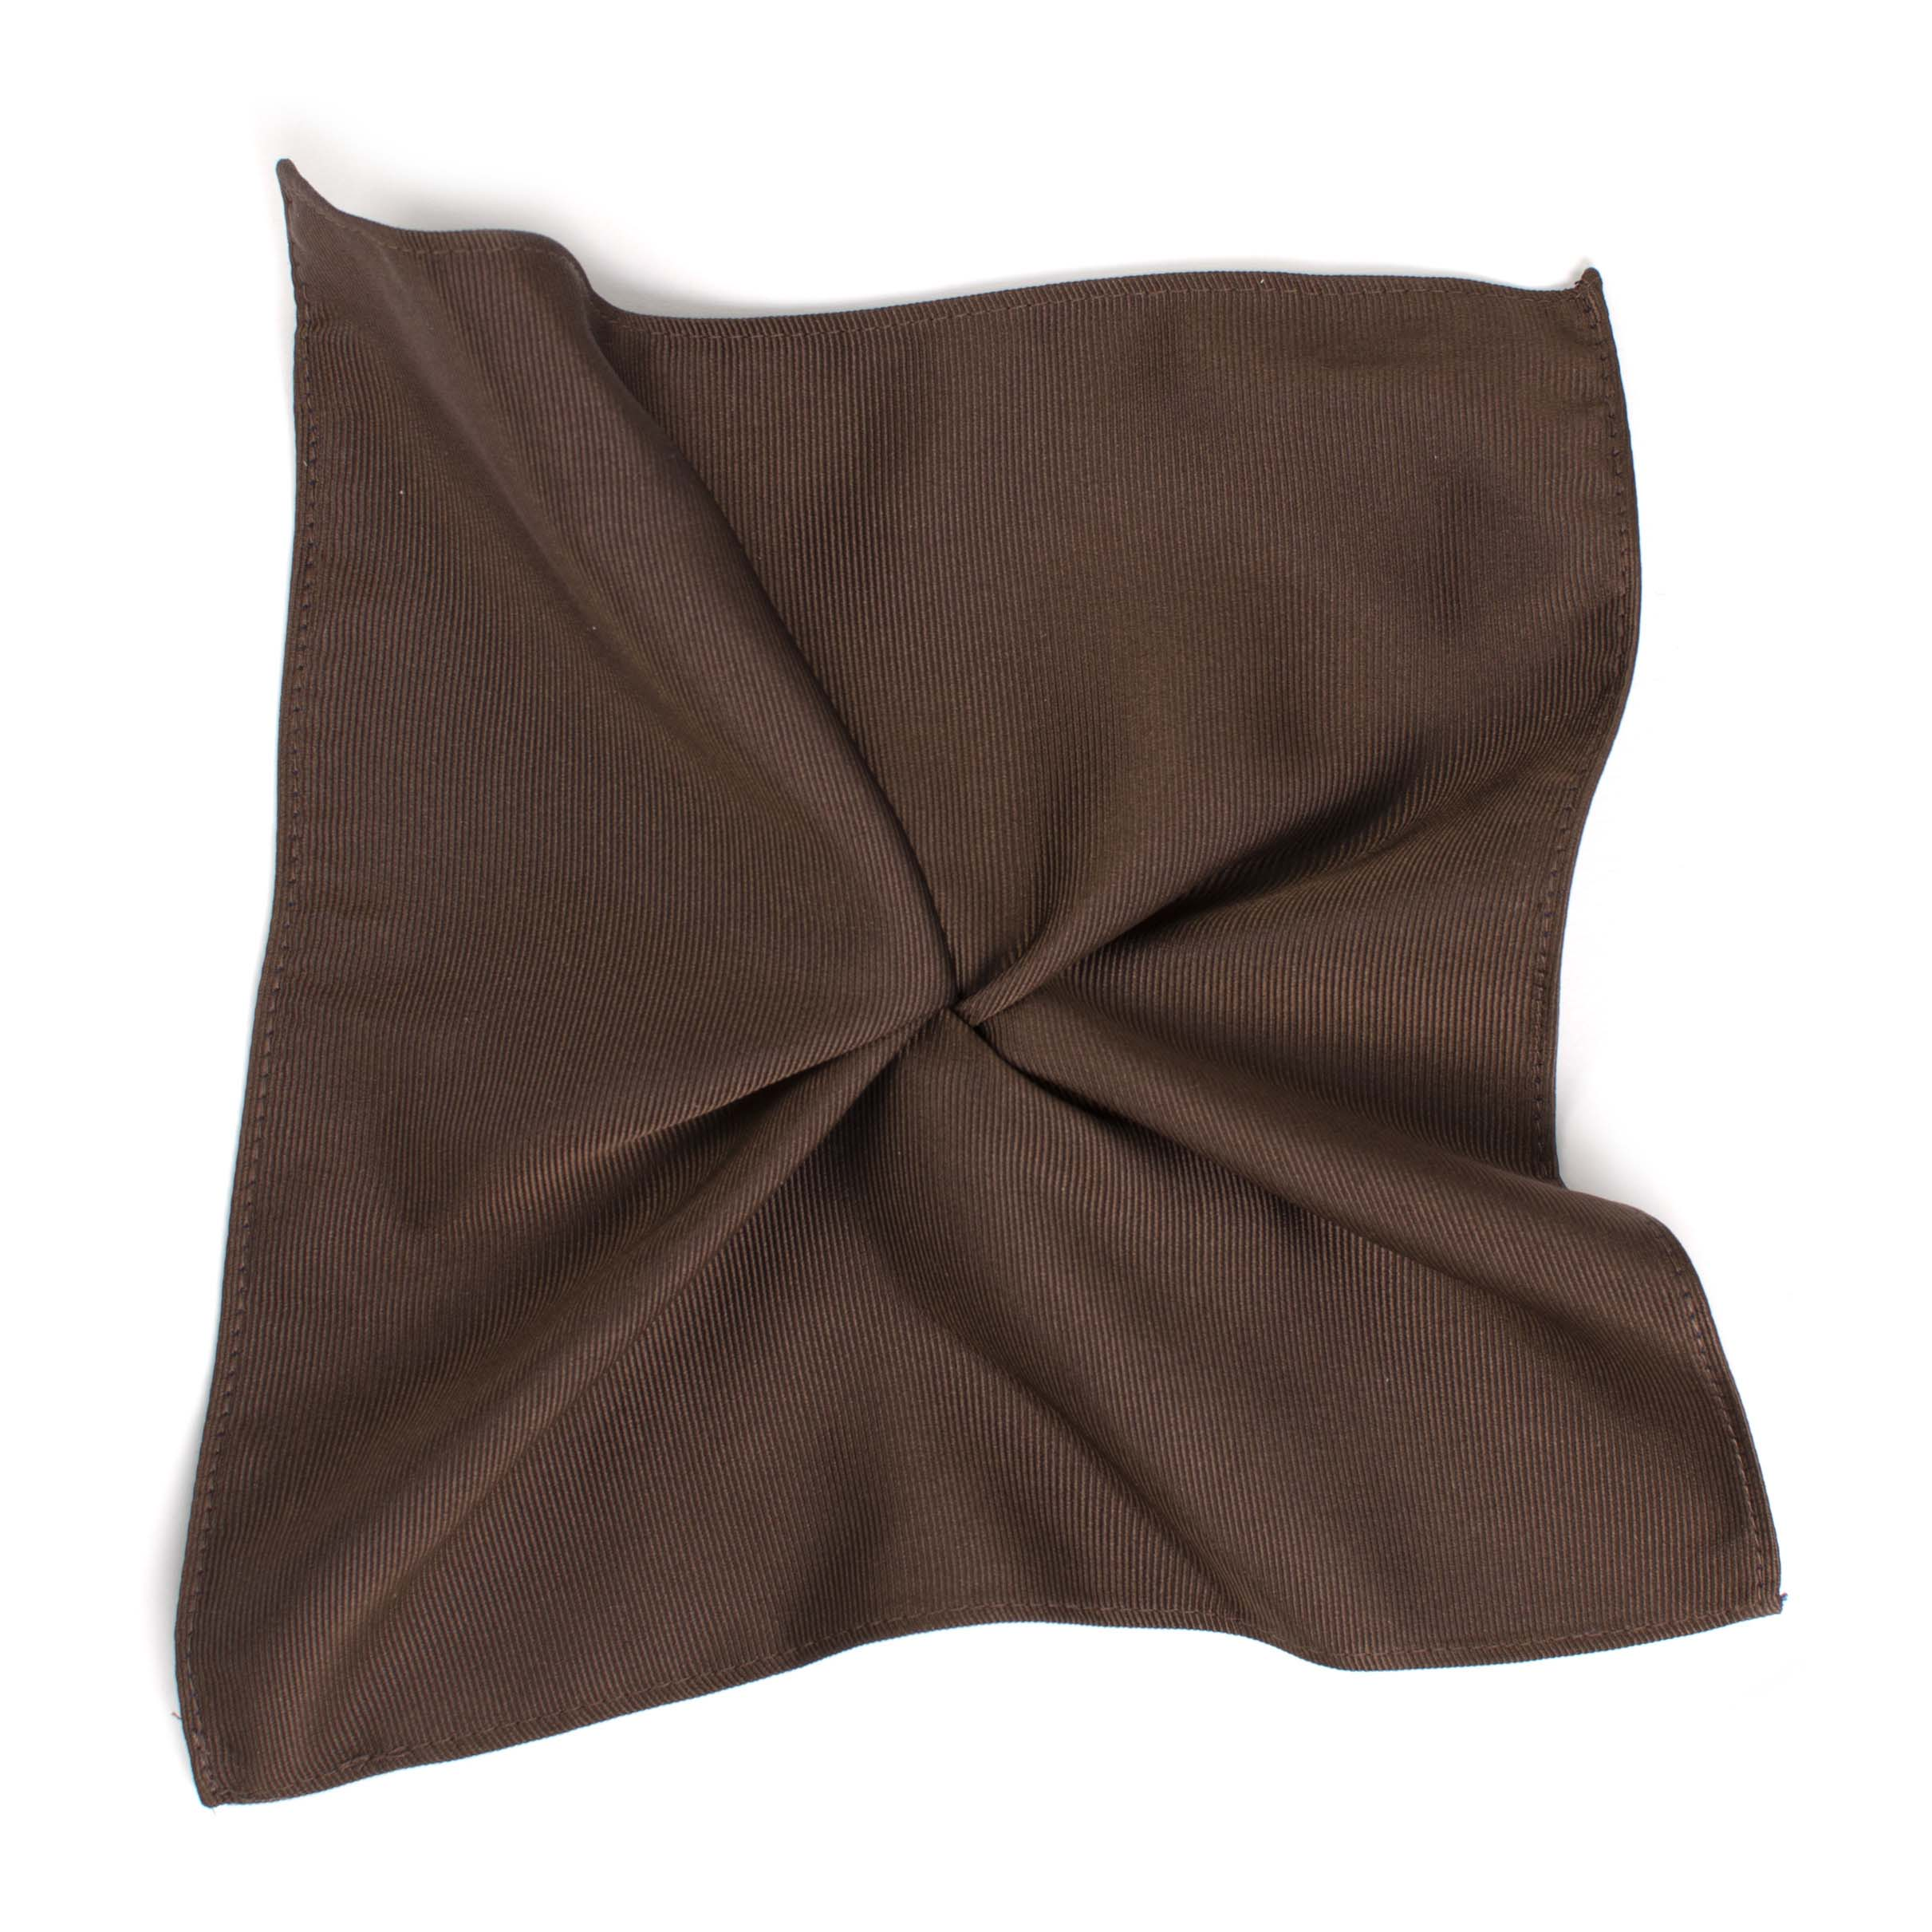 Pocket square classic brown ribbed